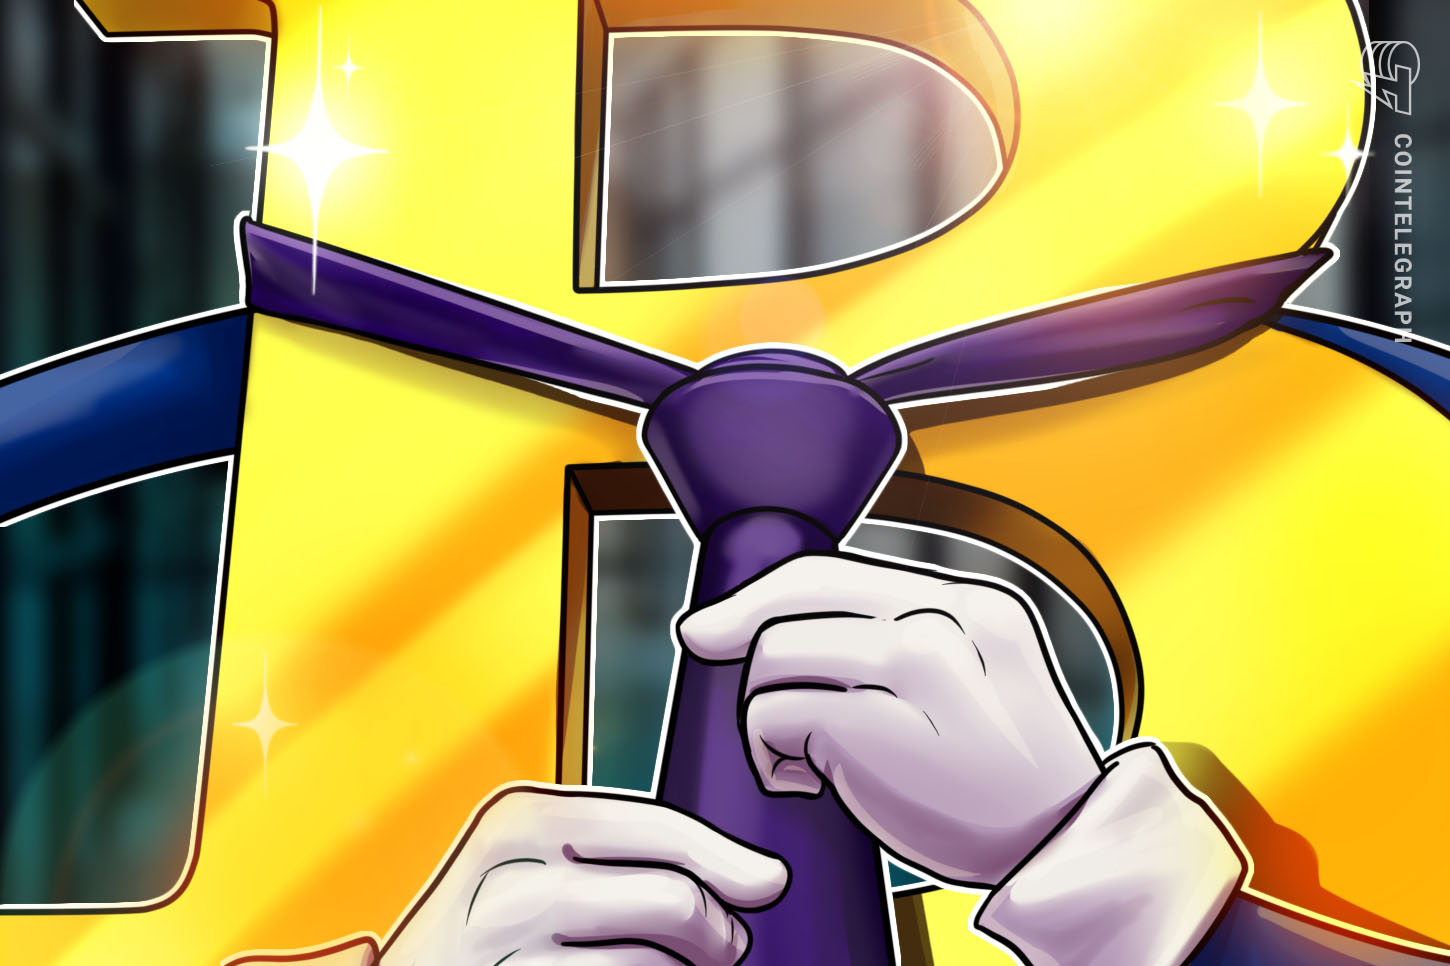 YouGov poll finds 27% support for making Bitcoin legal tender in US